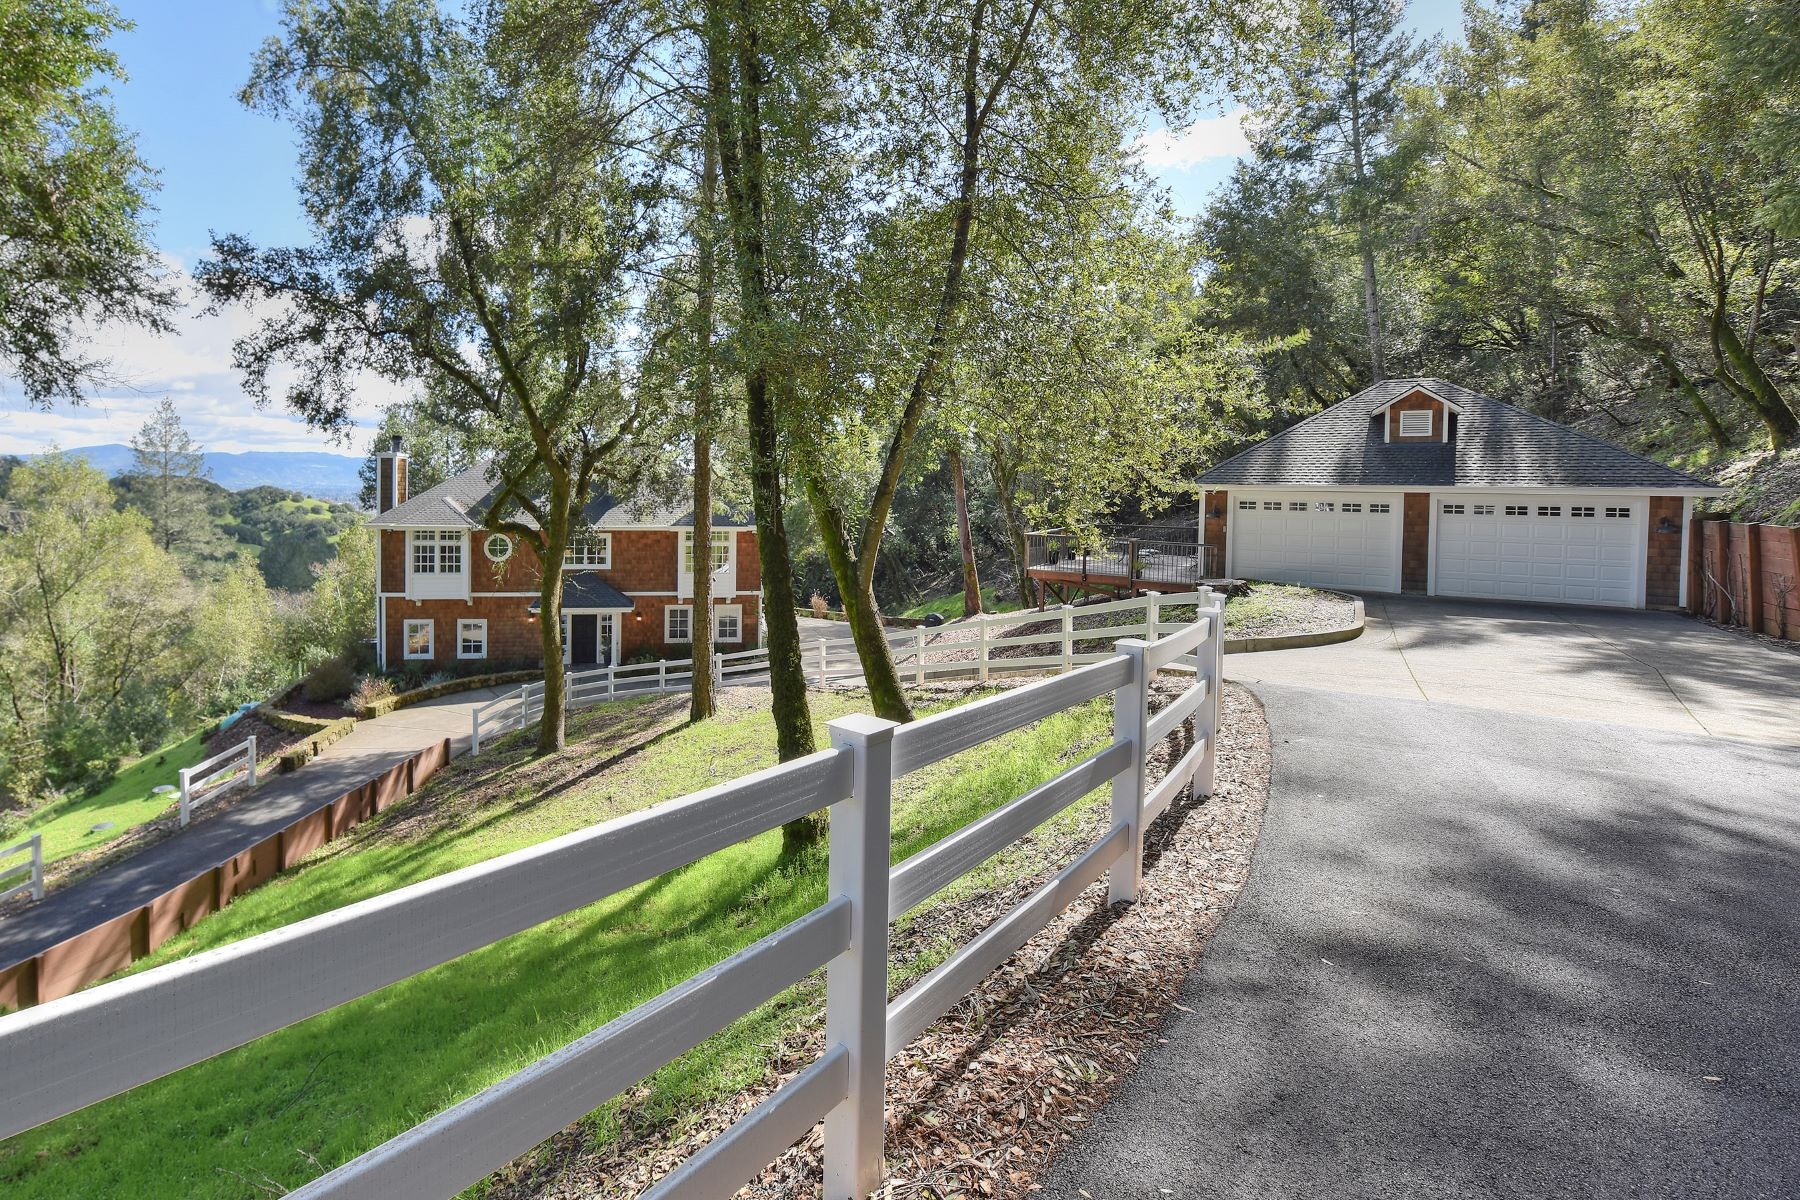 Single Family Home for Sale at Custom Craftsman Home Commands Stunning Views 4519 Dry Creek Road Napa, California 94558 United States